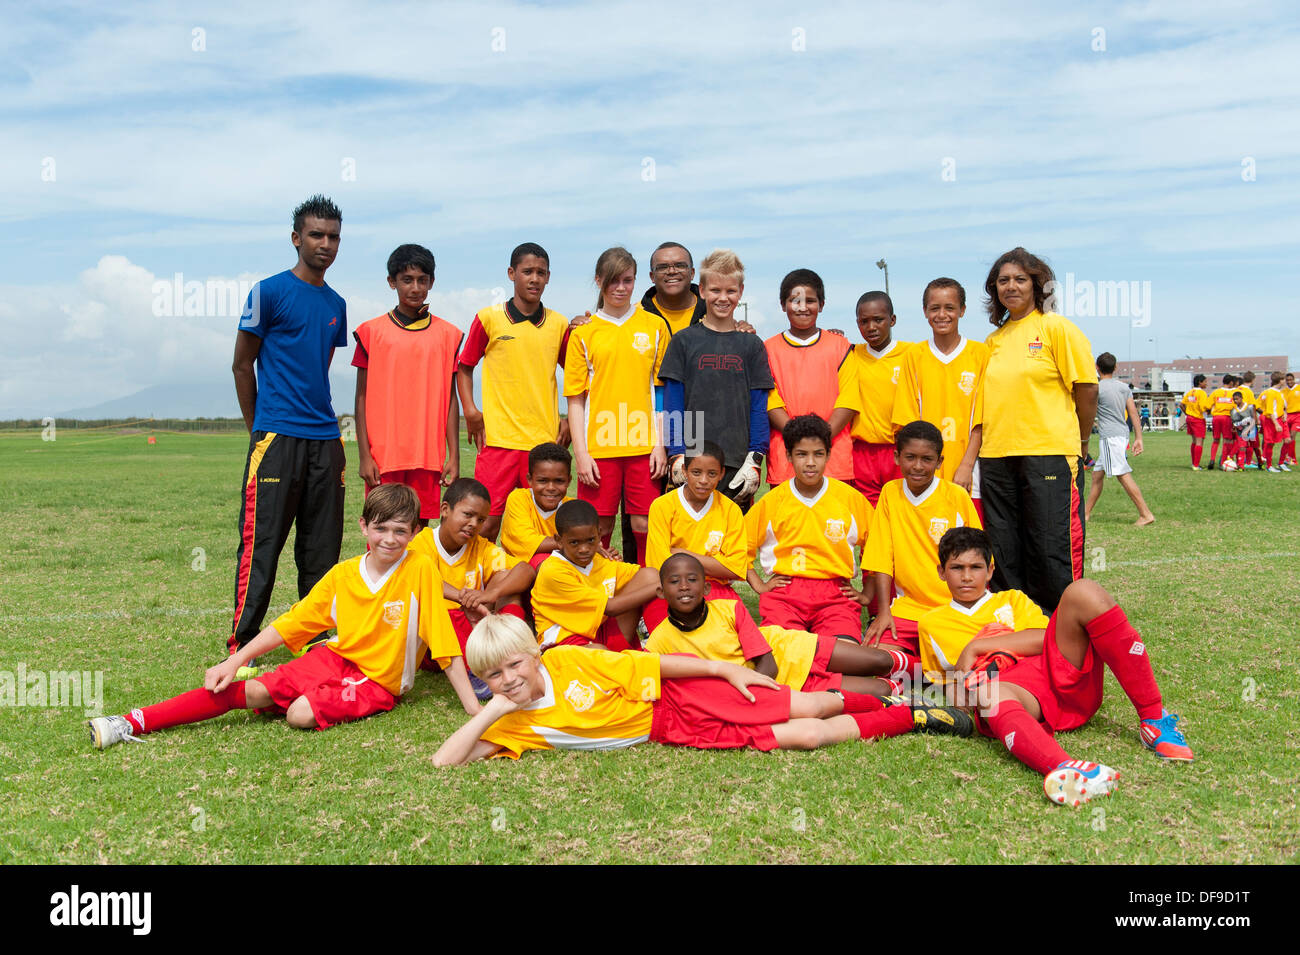 Junior football players with coach, team photo, Cape Town, South Africa - Stock Image